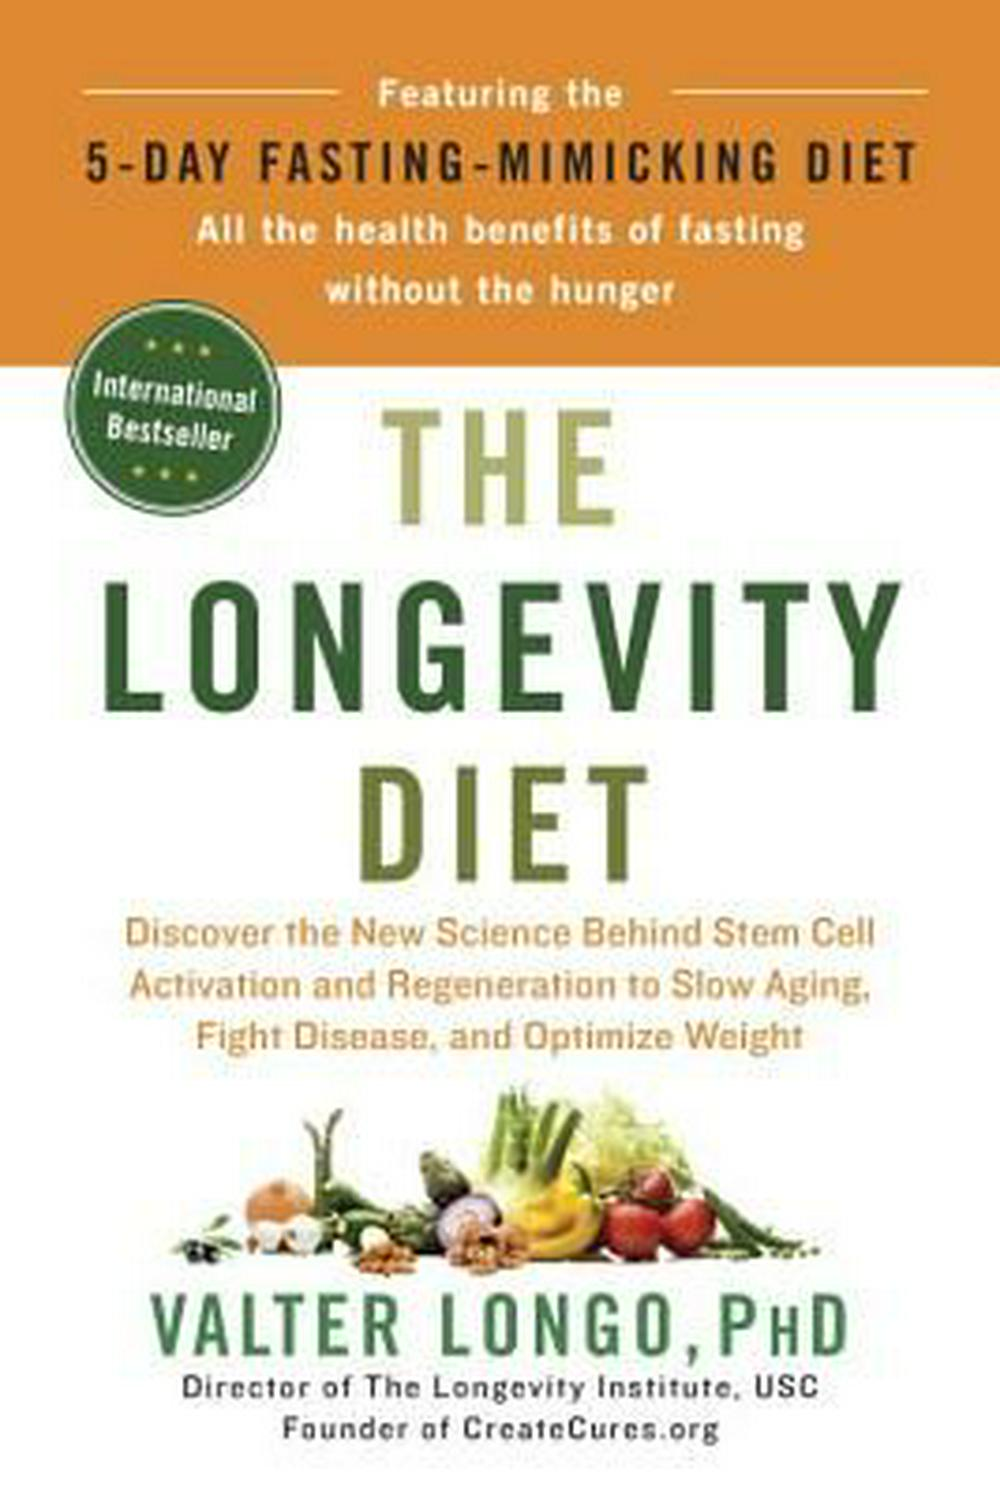 The Longevity Diet: Discover the New Science Behind Stem Cell Activation and Regeneration to Slow Aging, Fight Disease, and Optimize Weight by Valter Longo, ISBN: 9780525534075